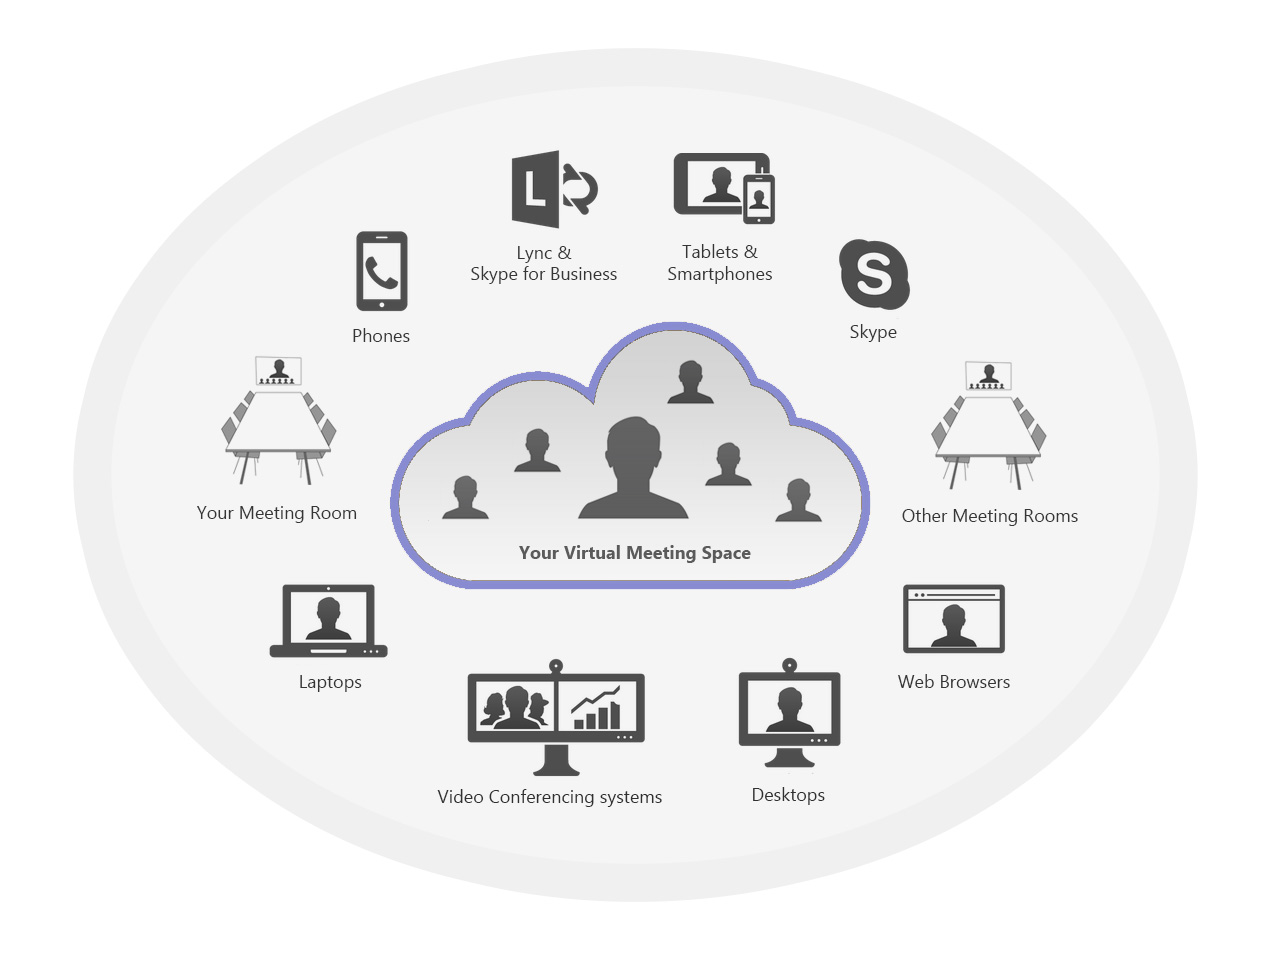 hight resolution of virtual meeting rooms and connectivity diagram